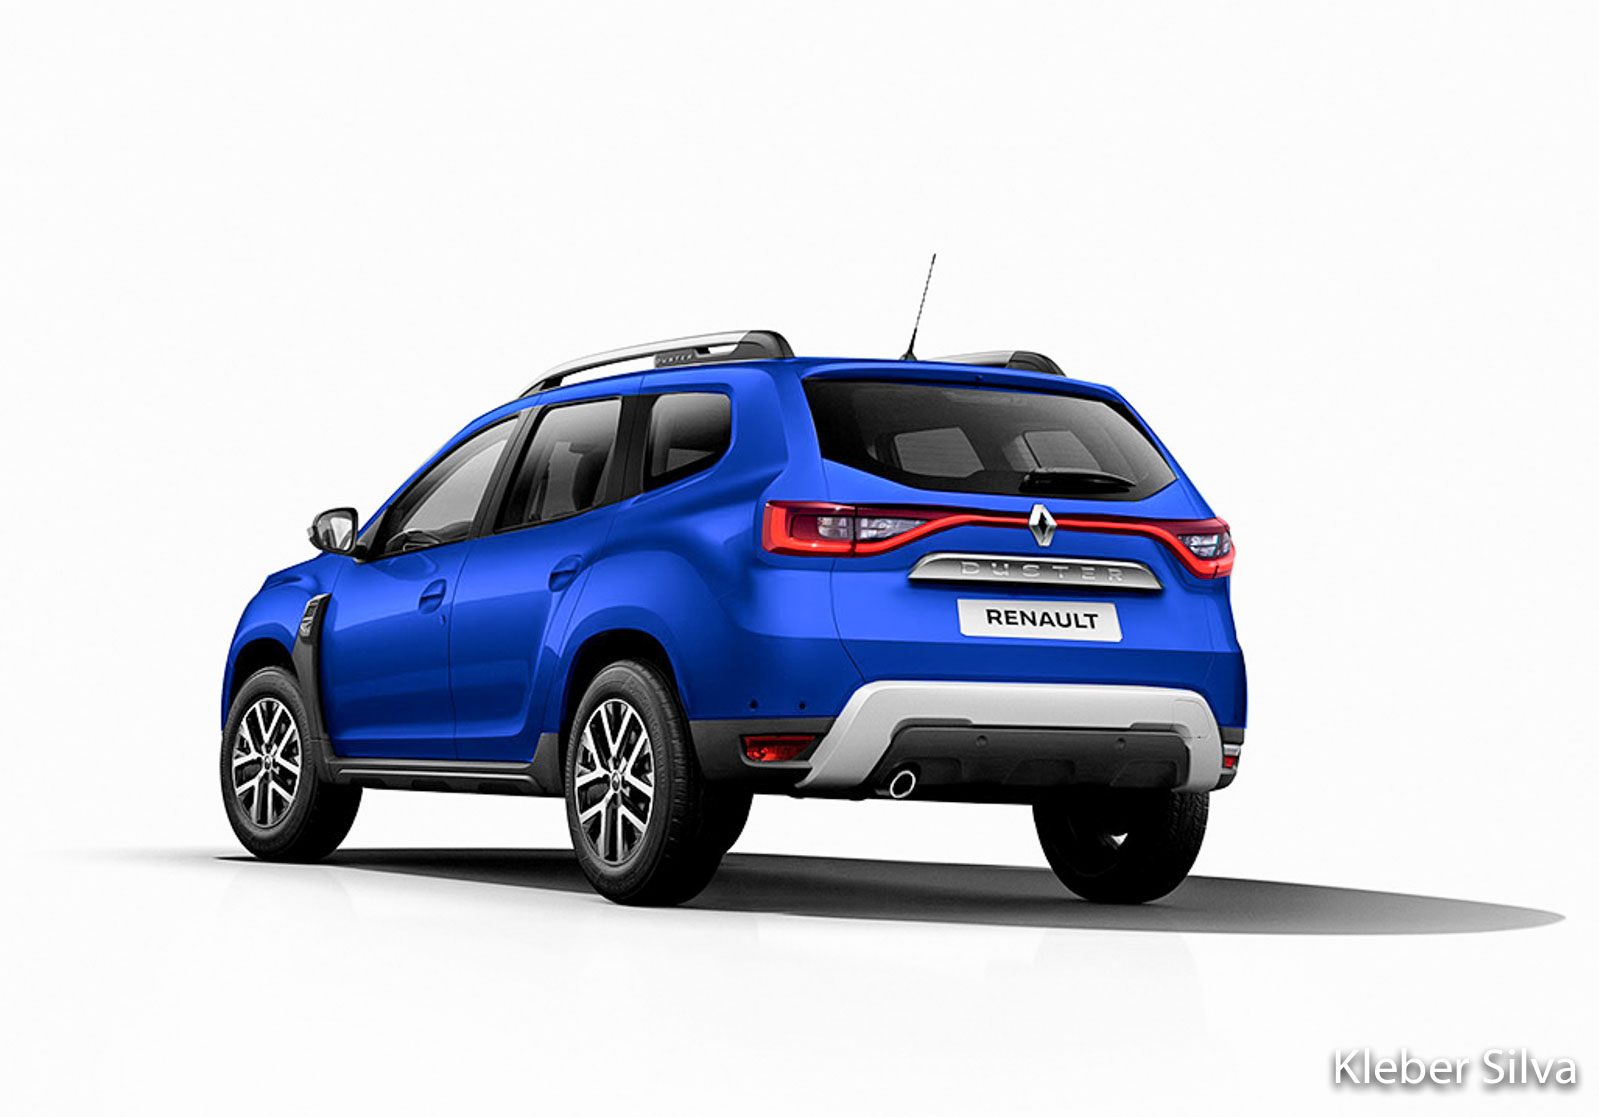 Renault Duster Rendered With Latest Global Design Cues; Looks Appealing